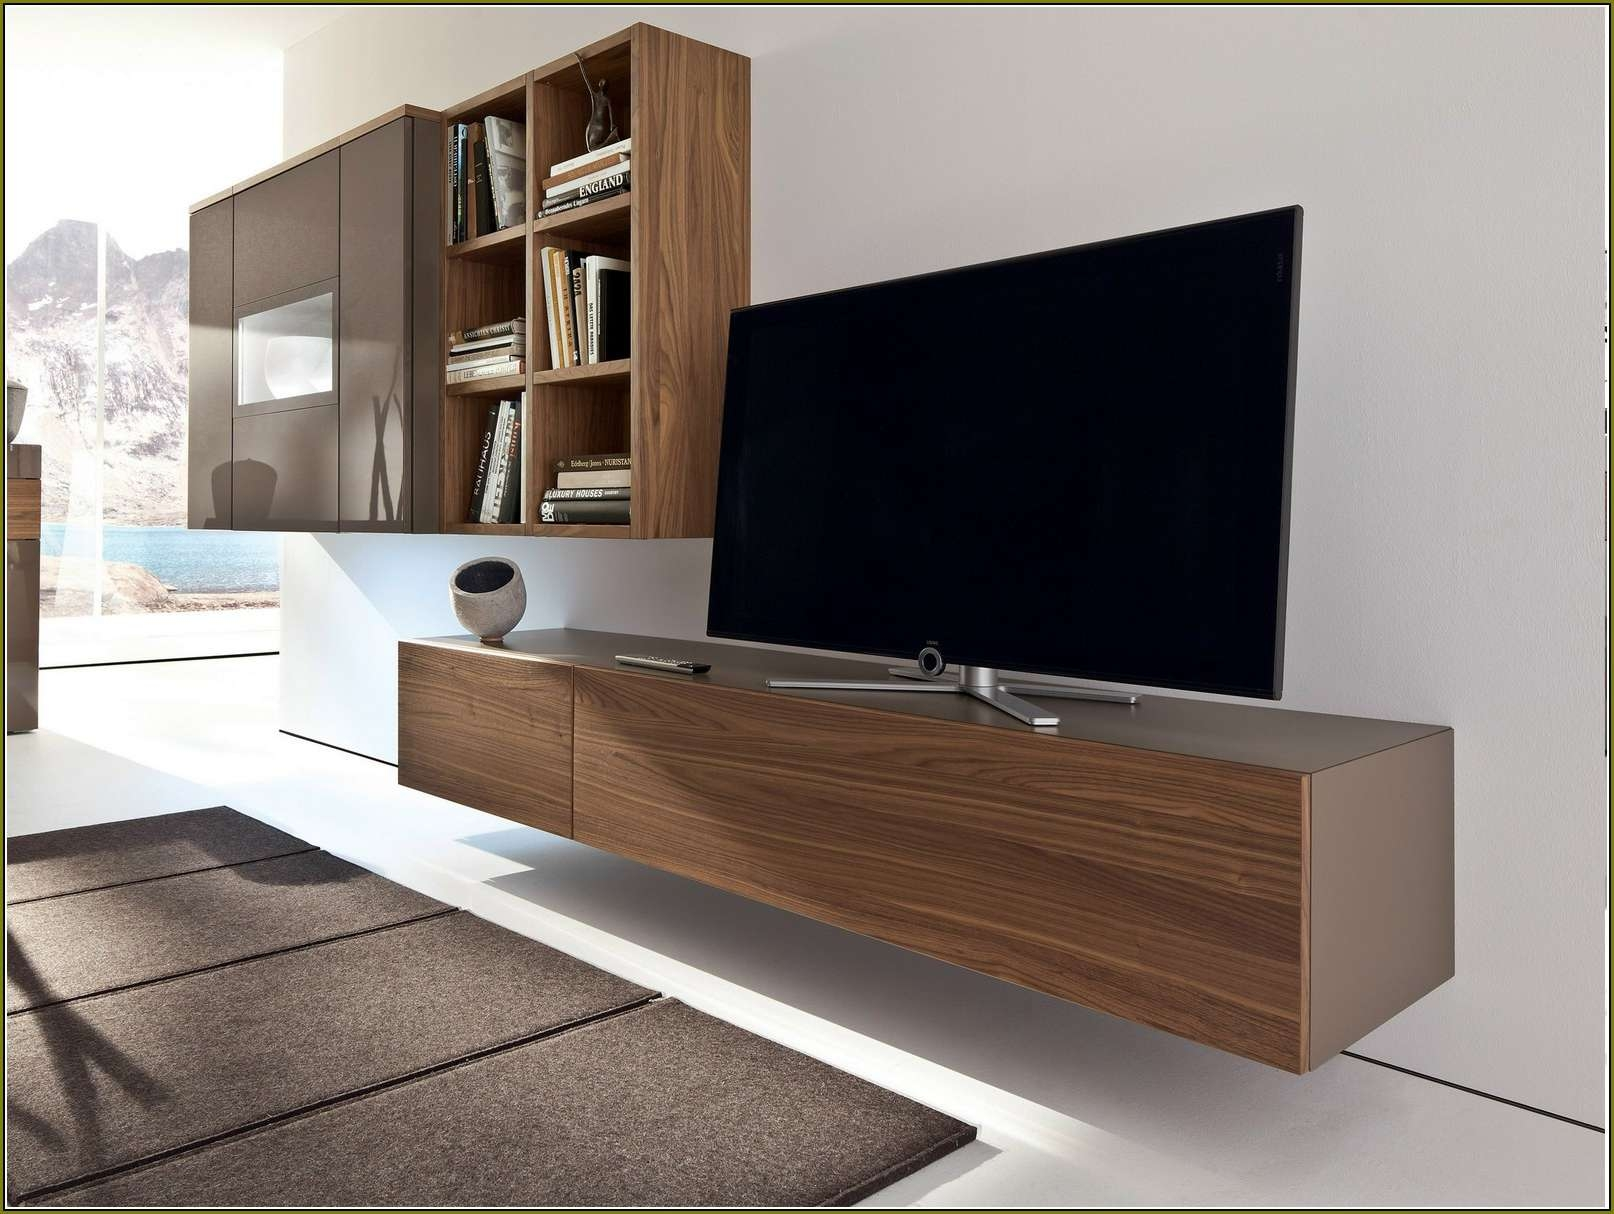 Indian Rosewood Wall Mounted Tv Cabinet With Sliding Door Panel Pertaining To Wall Mounted Tv Cabinets With Doors (View 7 of 20)